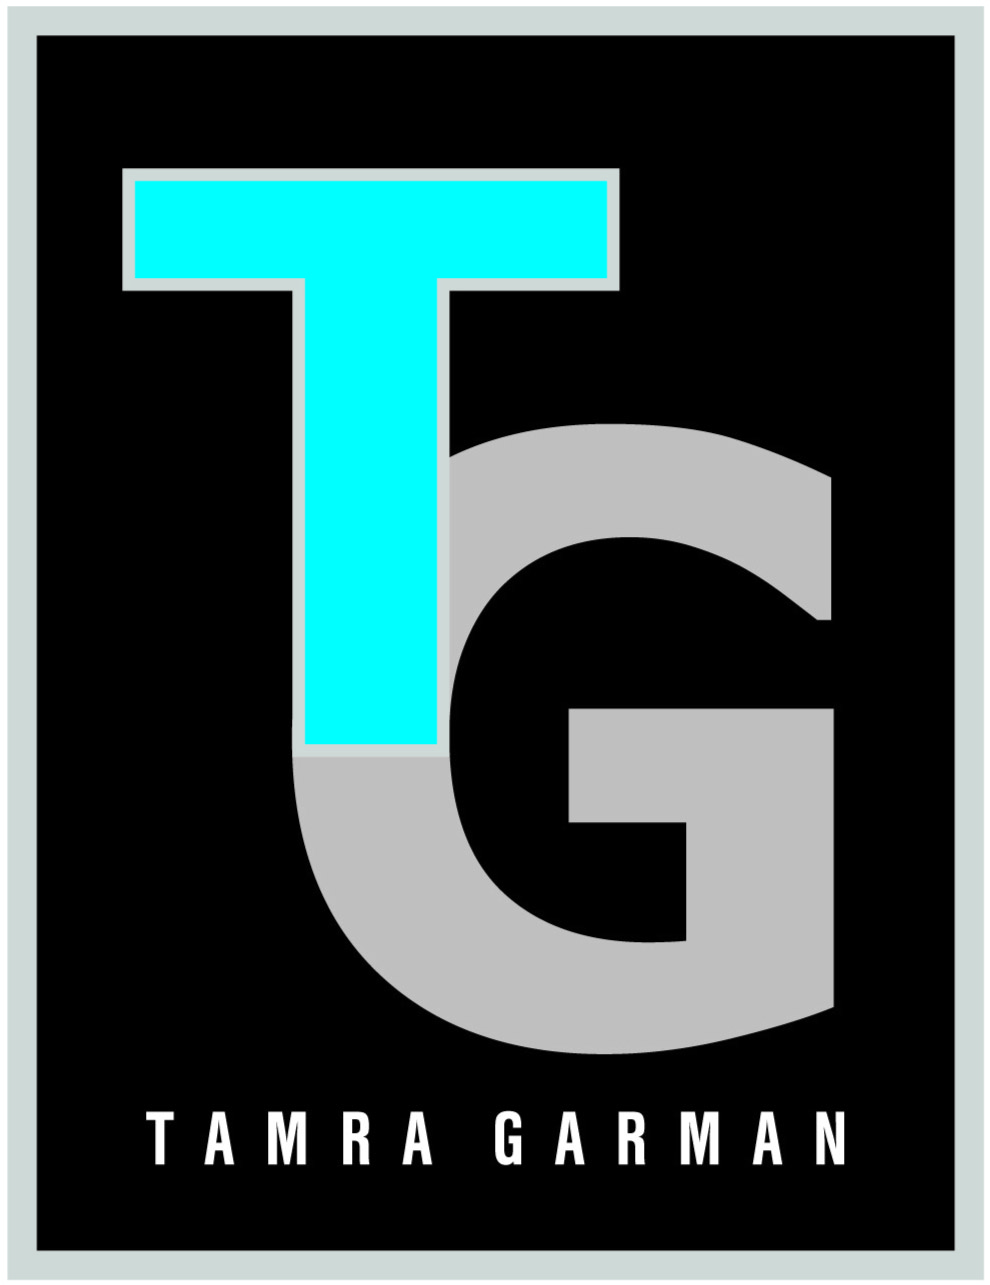 tamra garman logo cropped.jpg